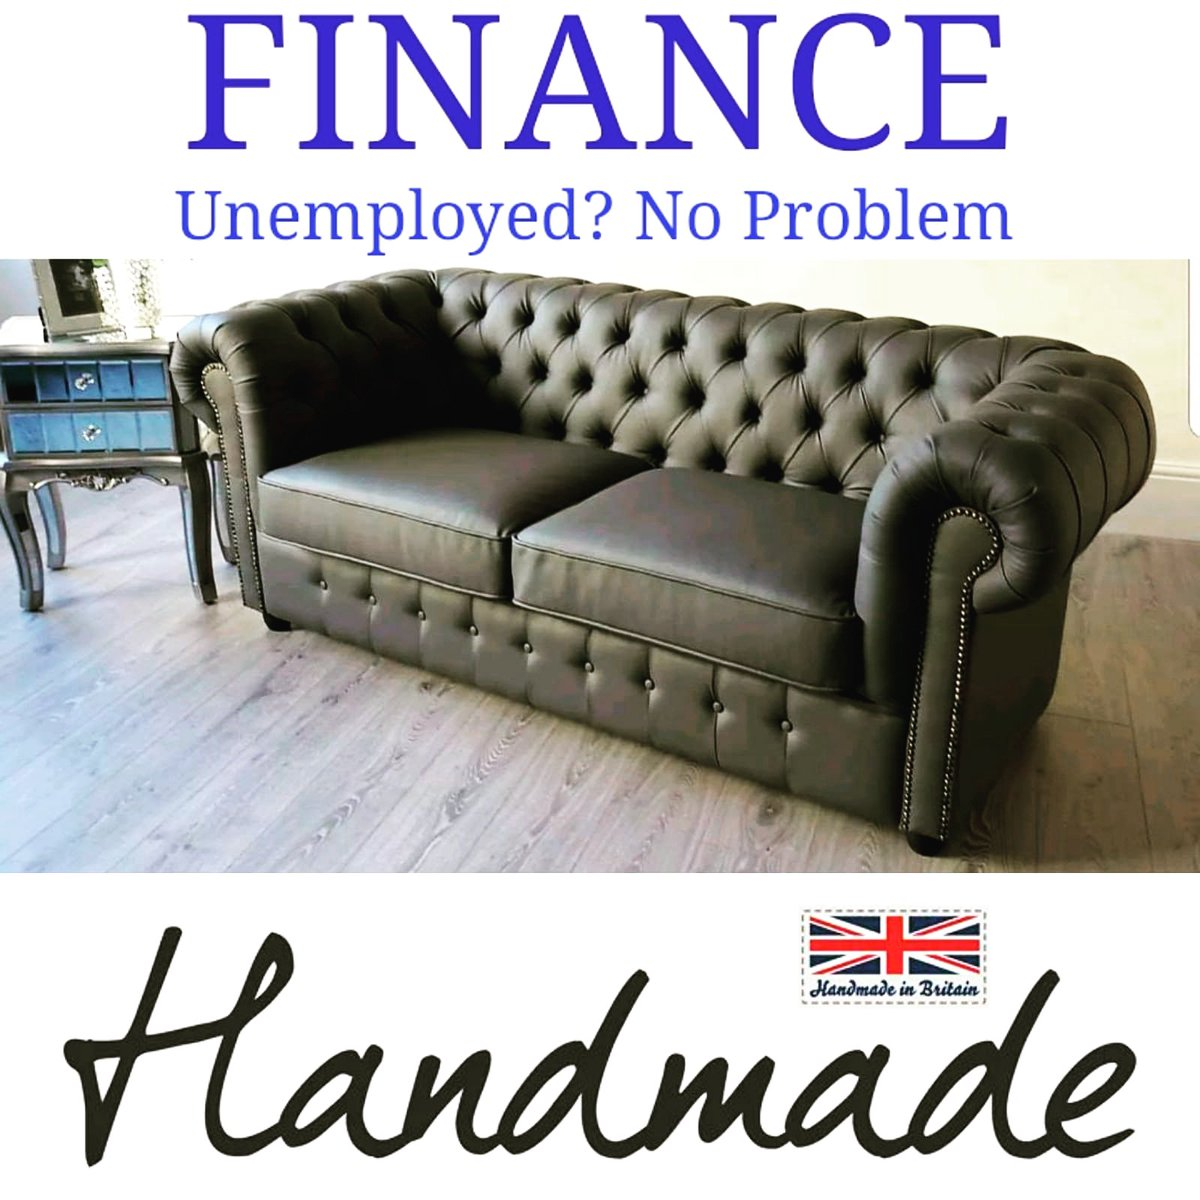 Sofa Uk Finance Sofa Factory Uk Sofafactoryuk1 Twitter